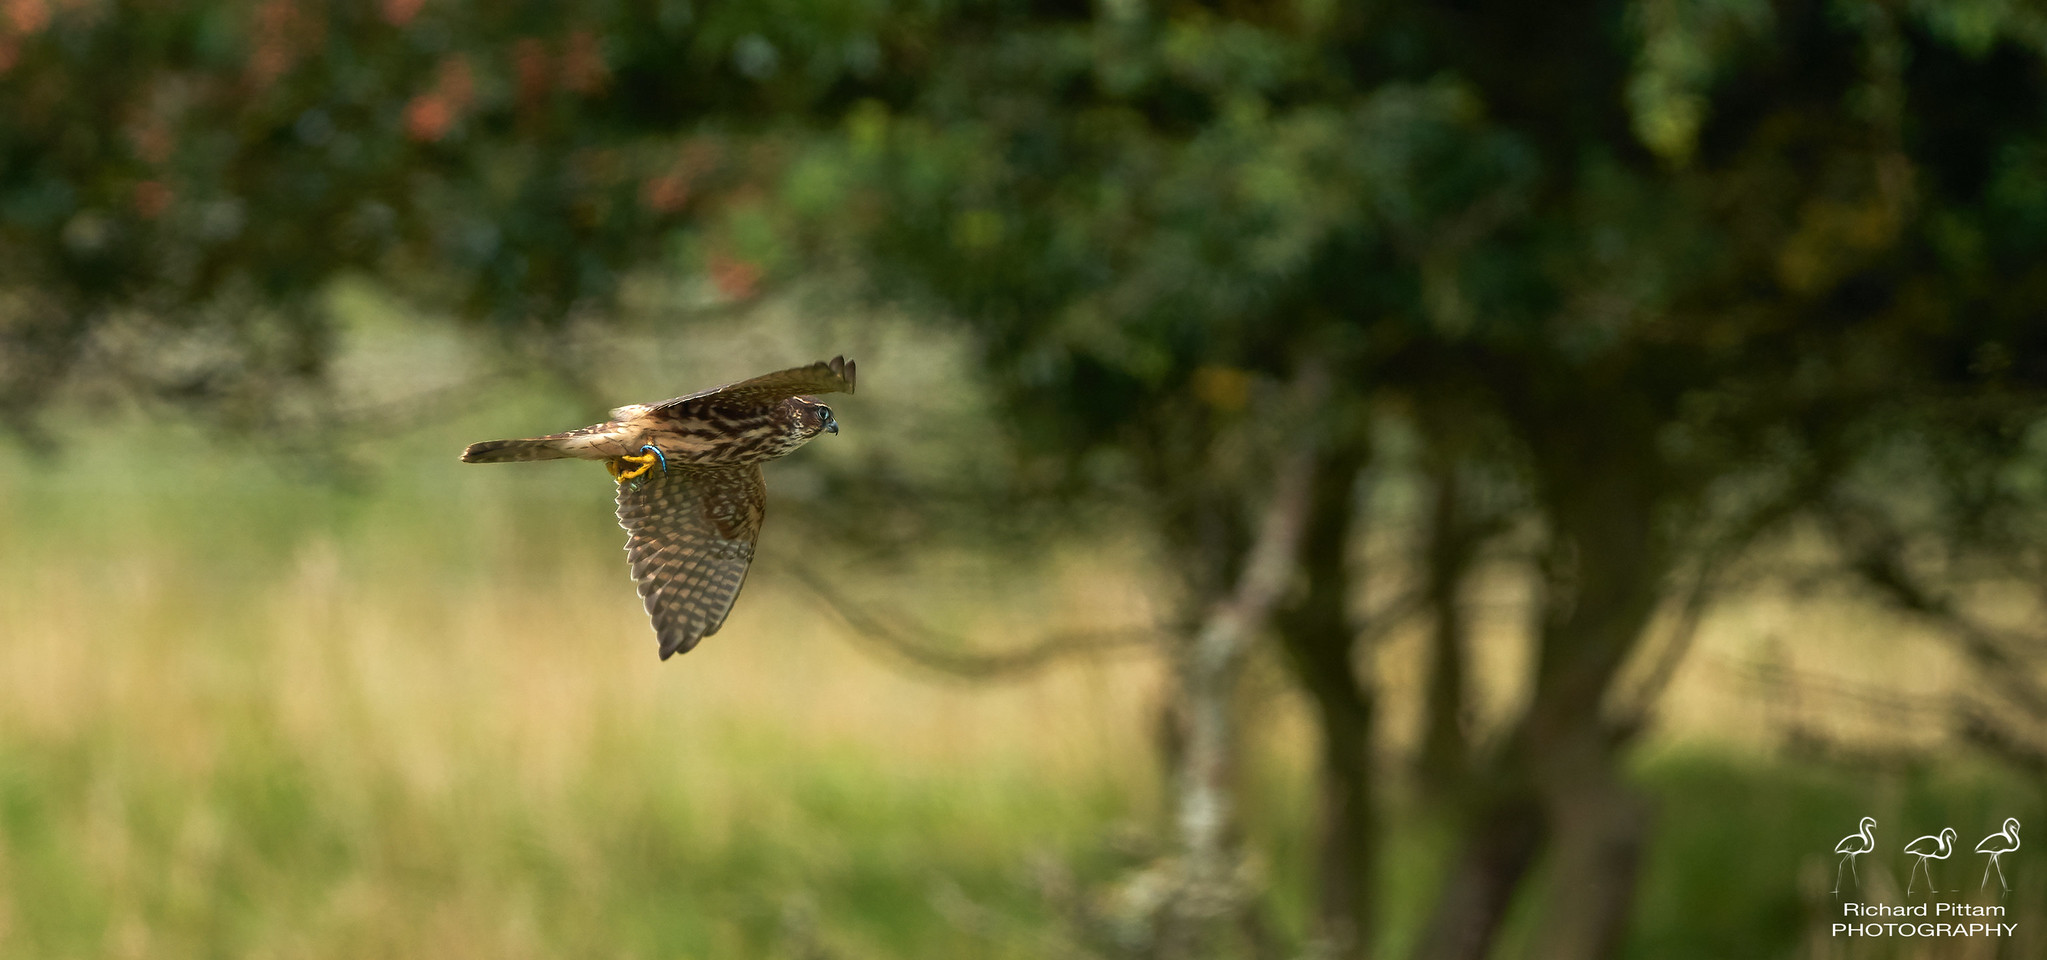 Young Merlin - thought these images were worth saving as not every day you see a Merlin - especially one catching Dragonflies